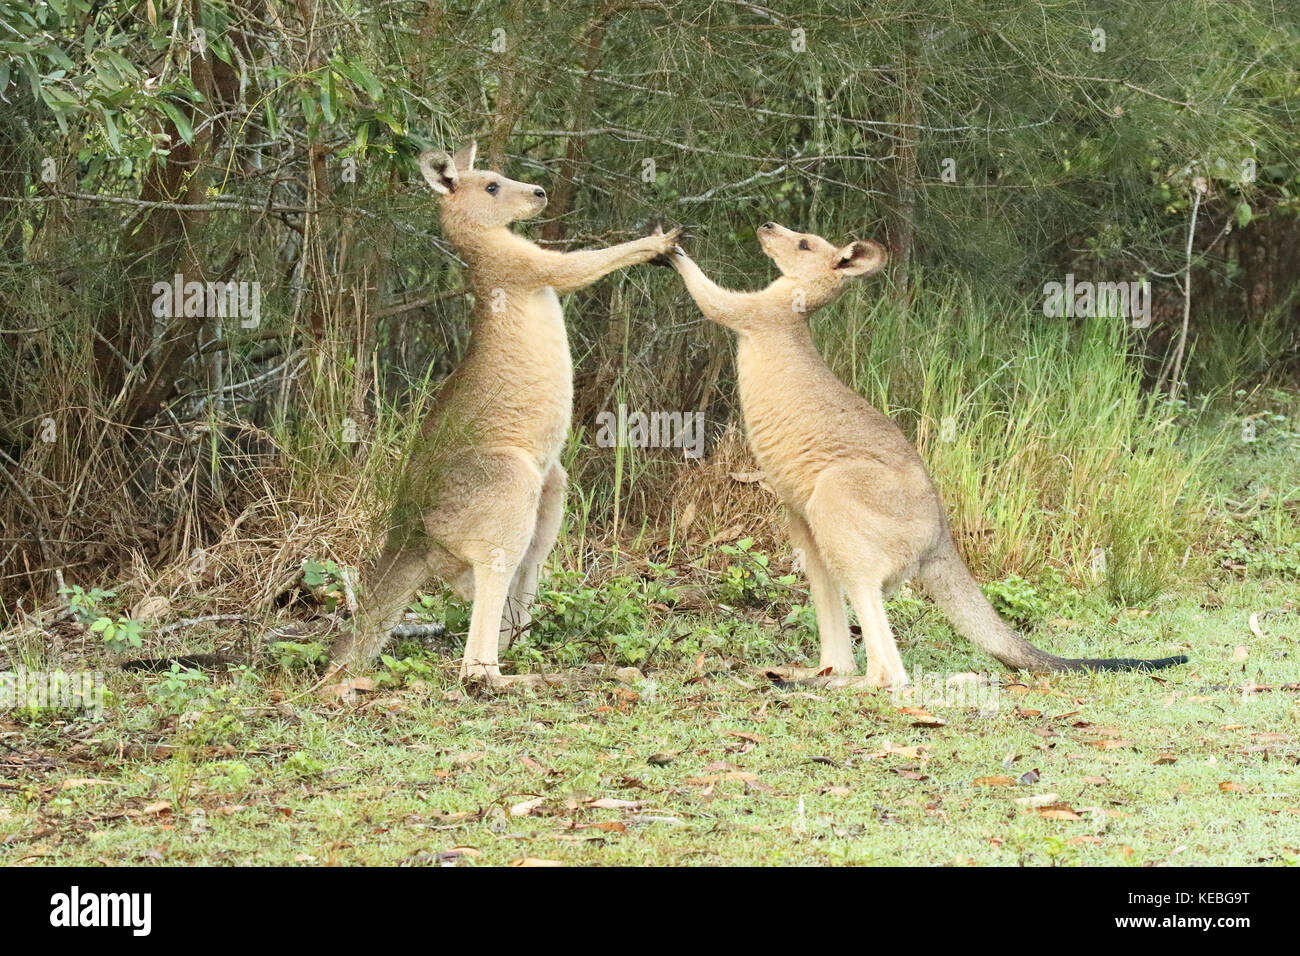 A pair of male Eastern Grey Kangaroos sparring in a gum forest. - Stock Image